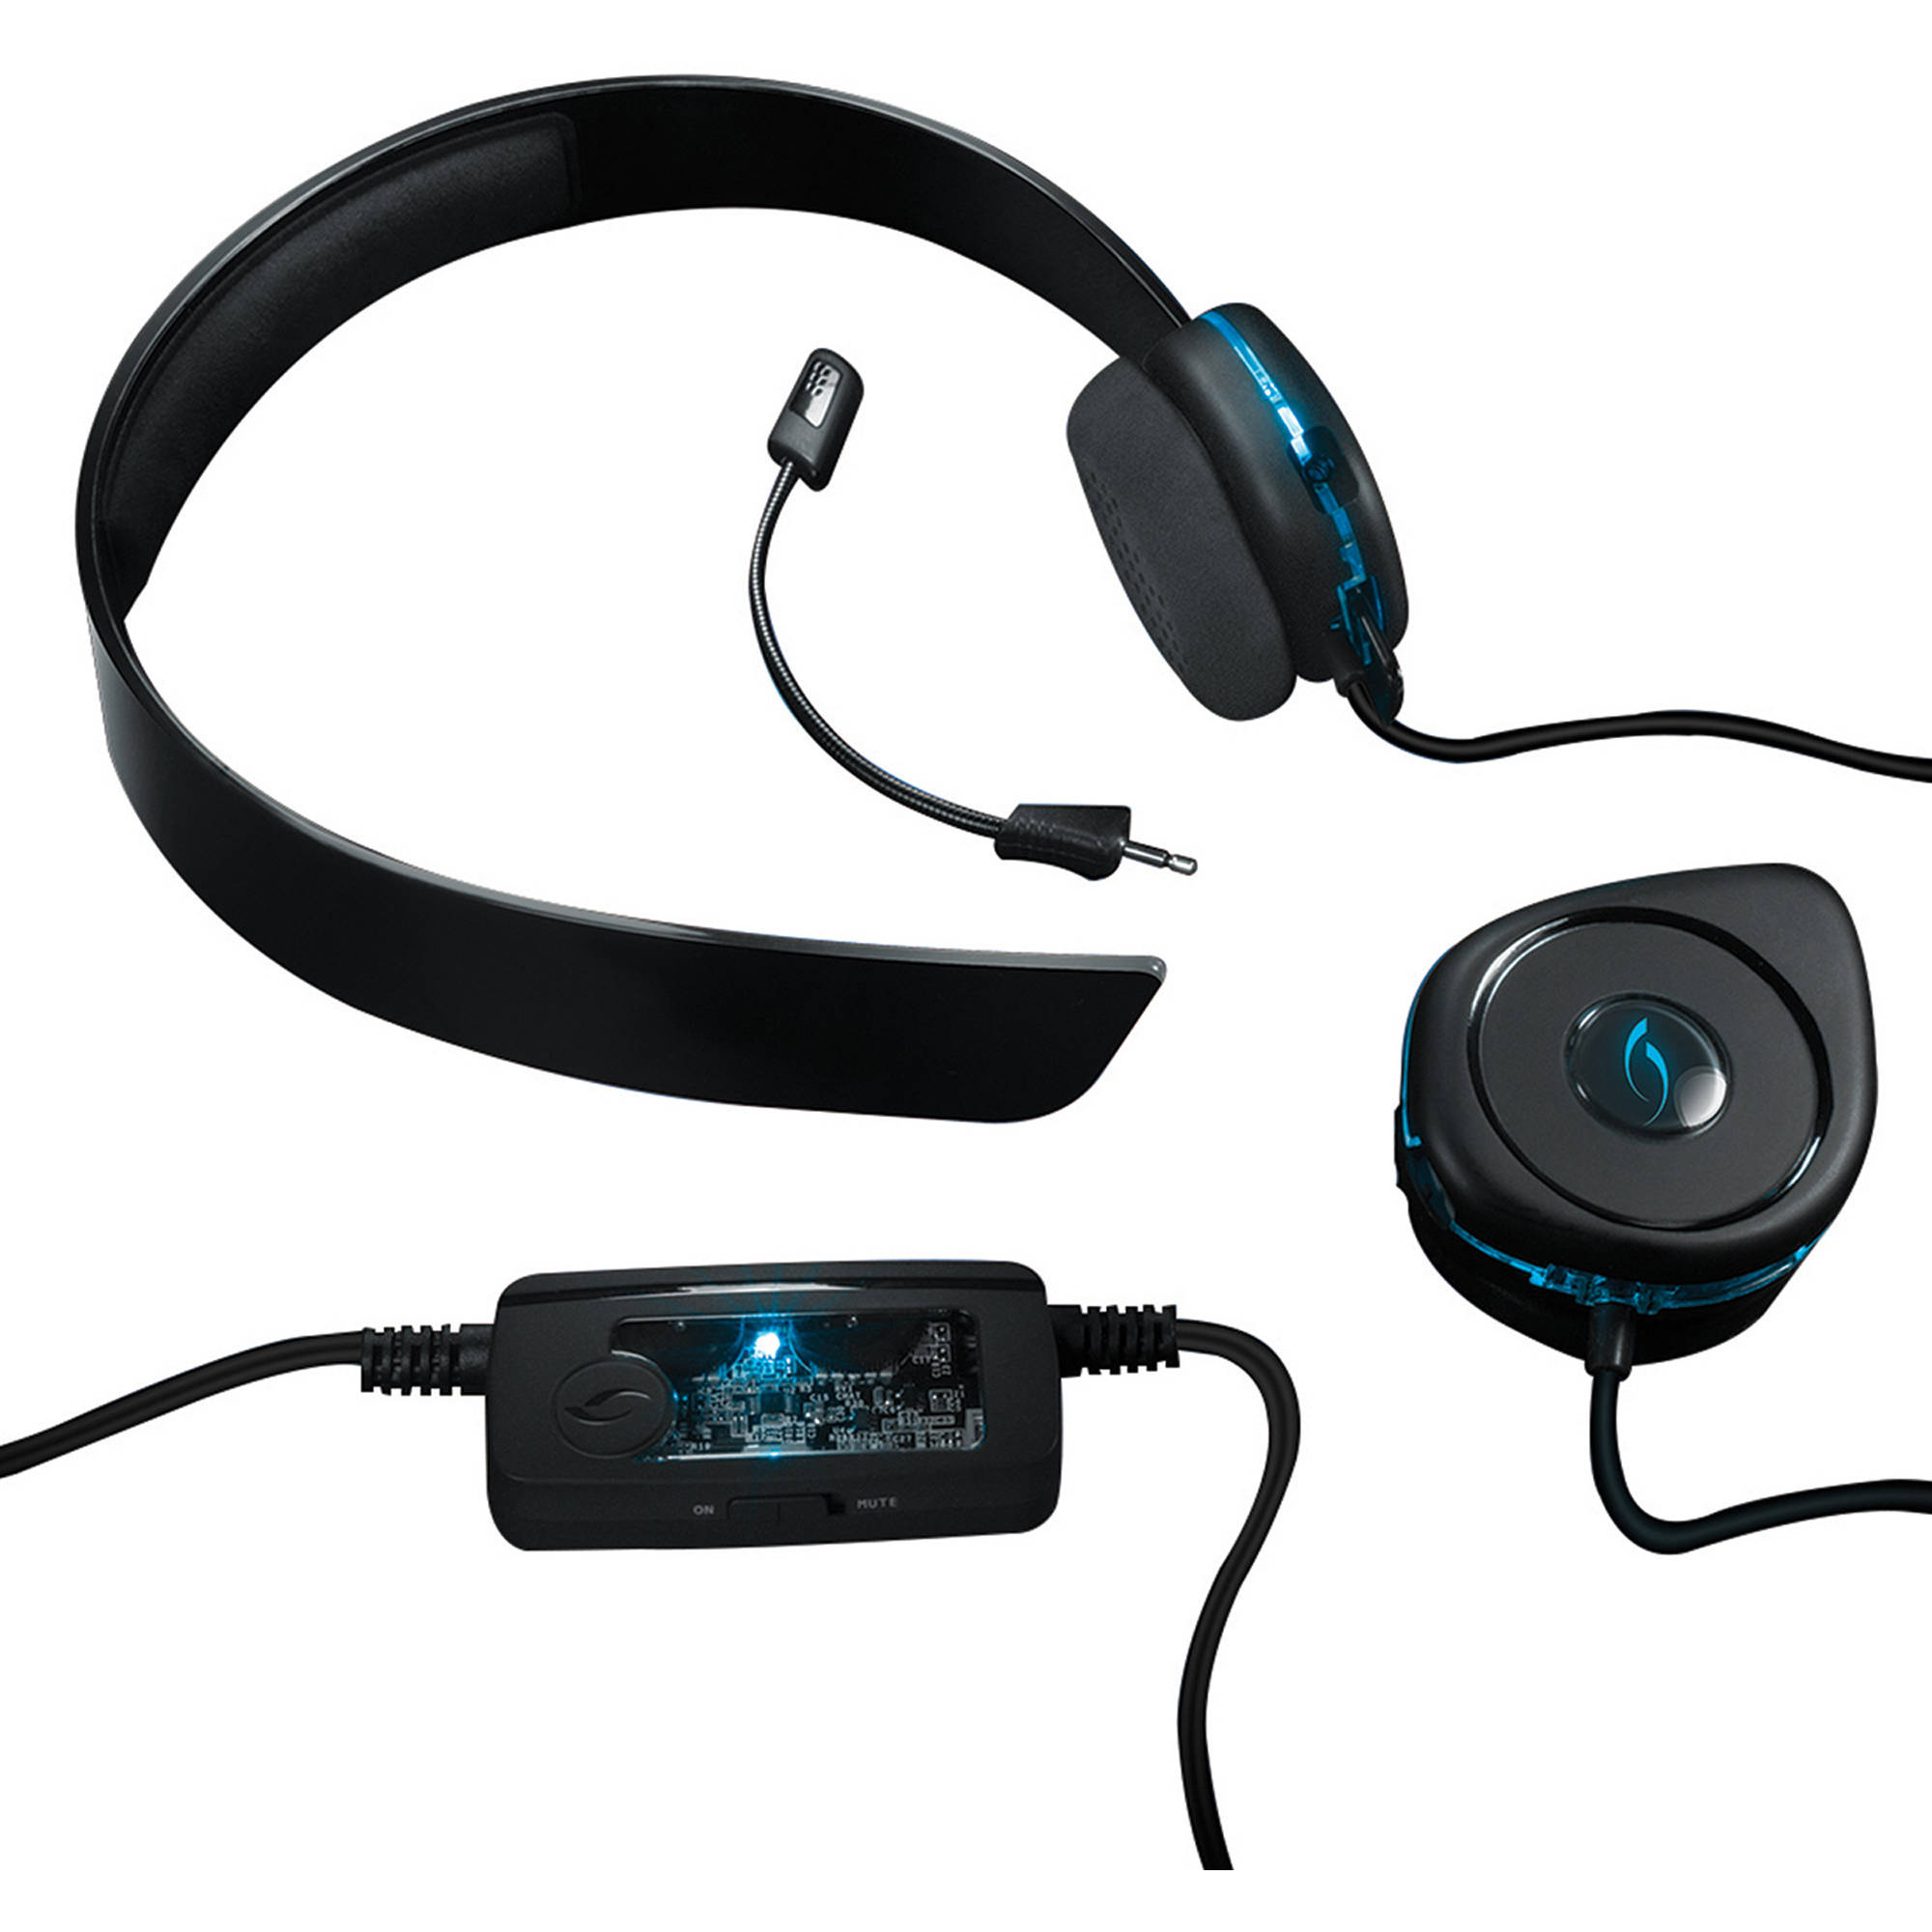 Pdp Afterglow Axg.40 Wired Gaming Headset - Walmart.com